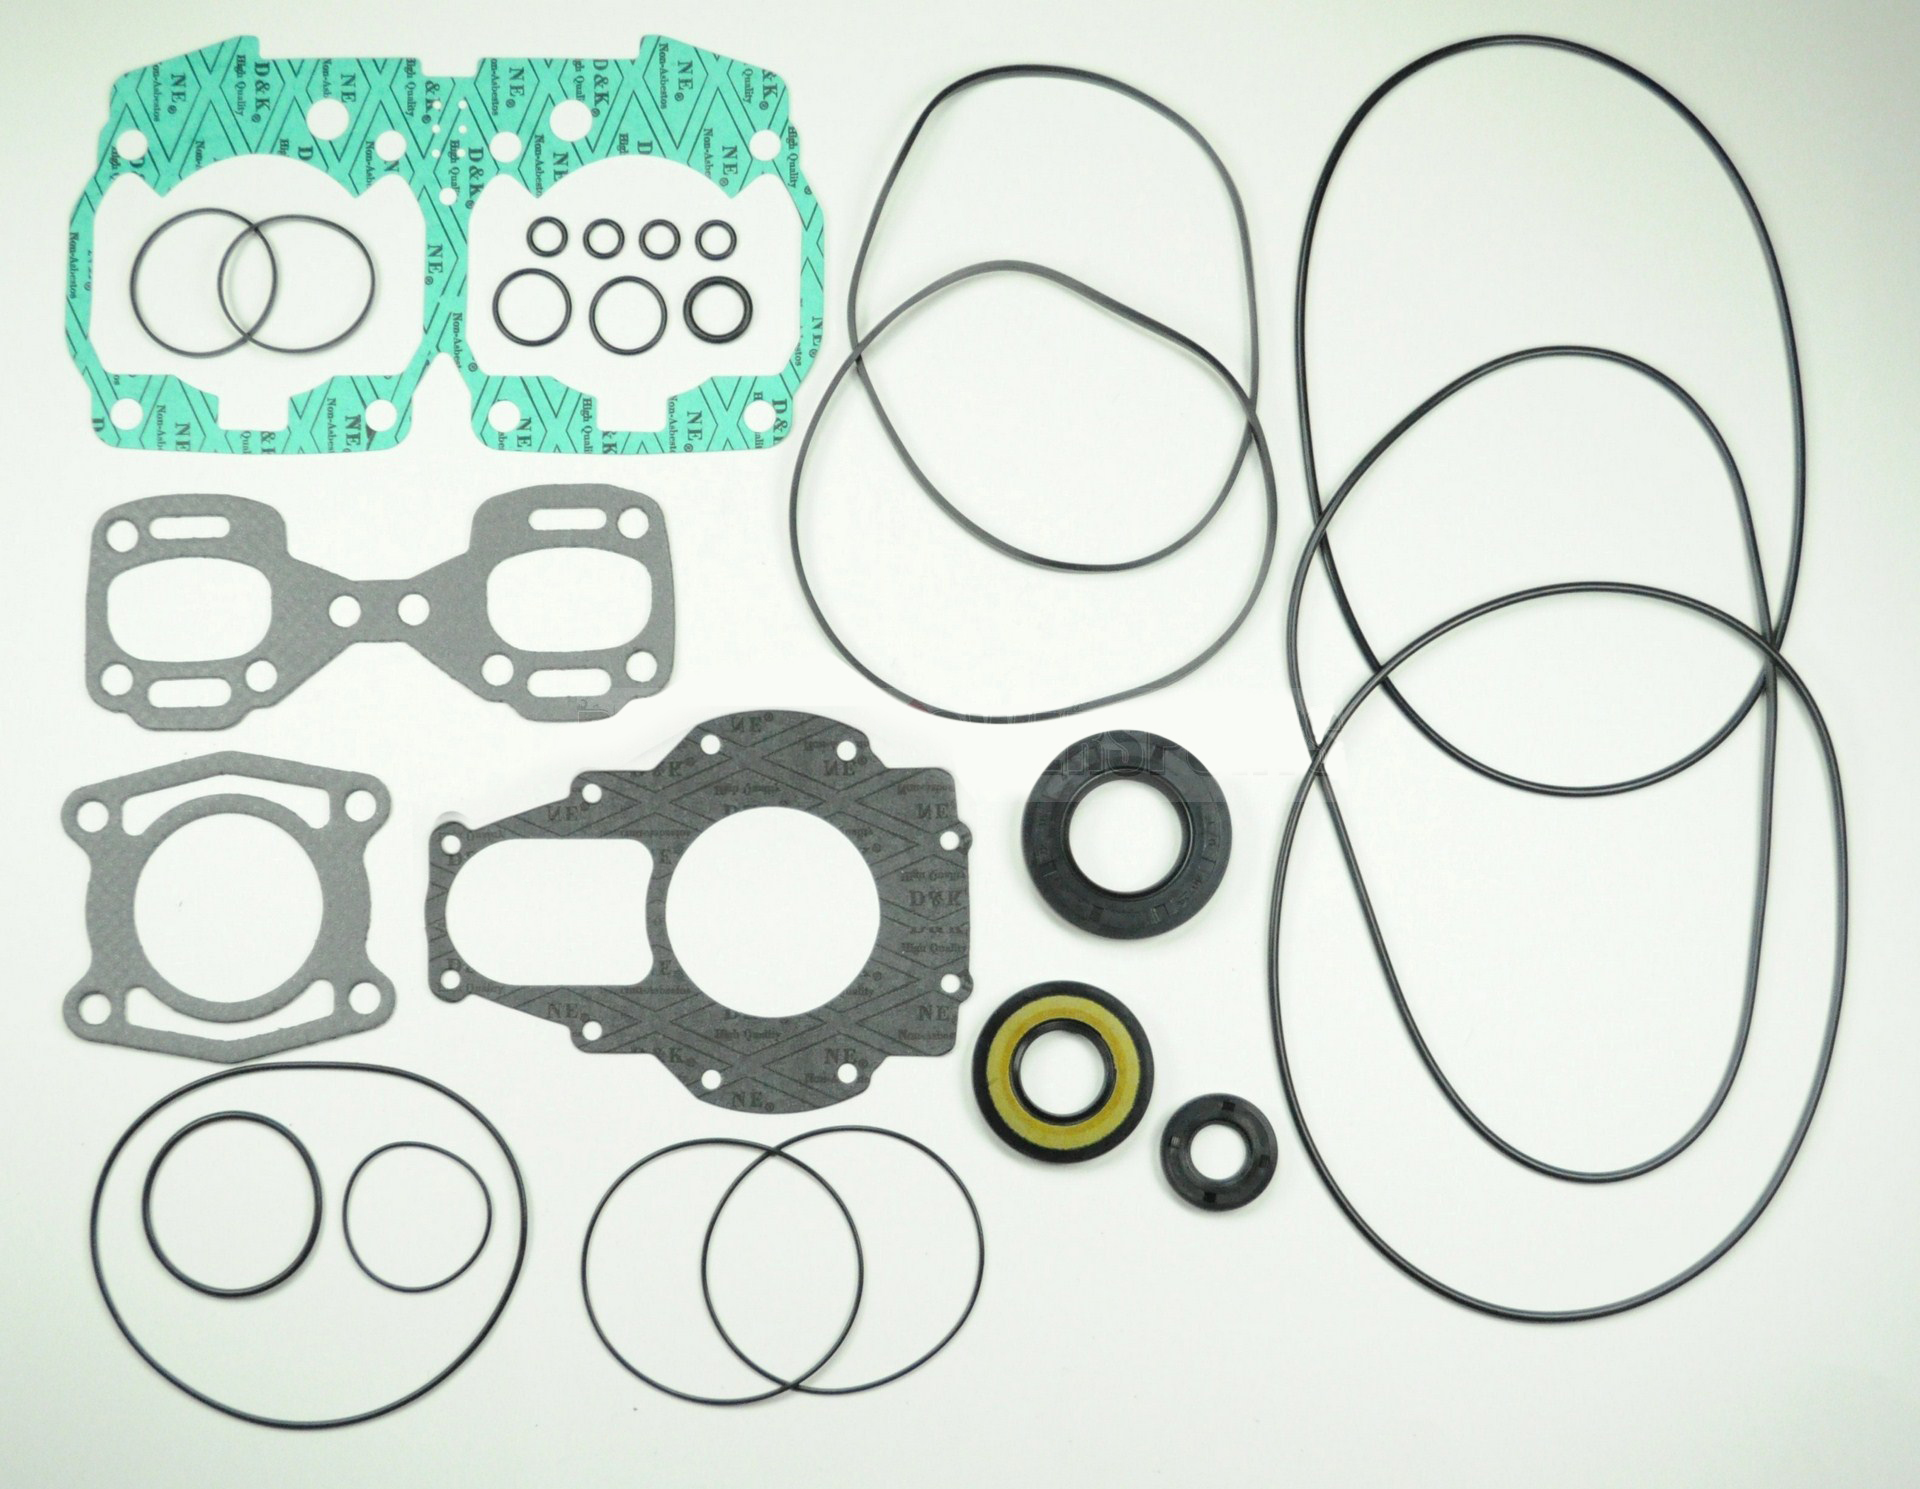 Sea Doo 787 800 RFI Complete Engine Rebuild Gasket Seal Kit